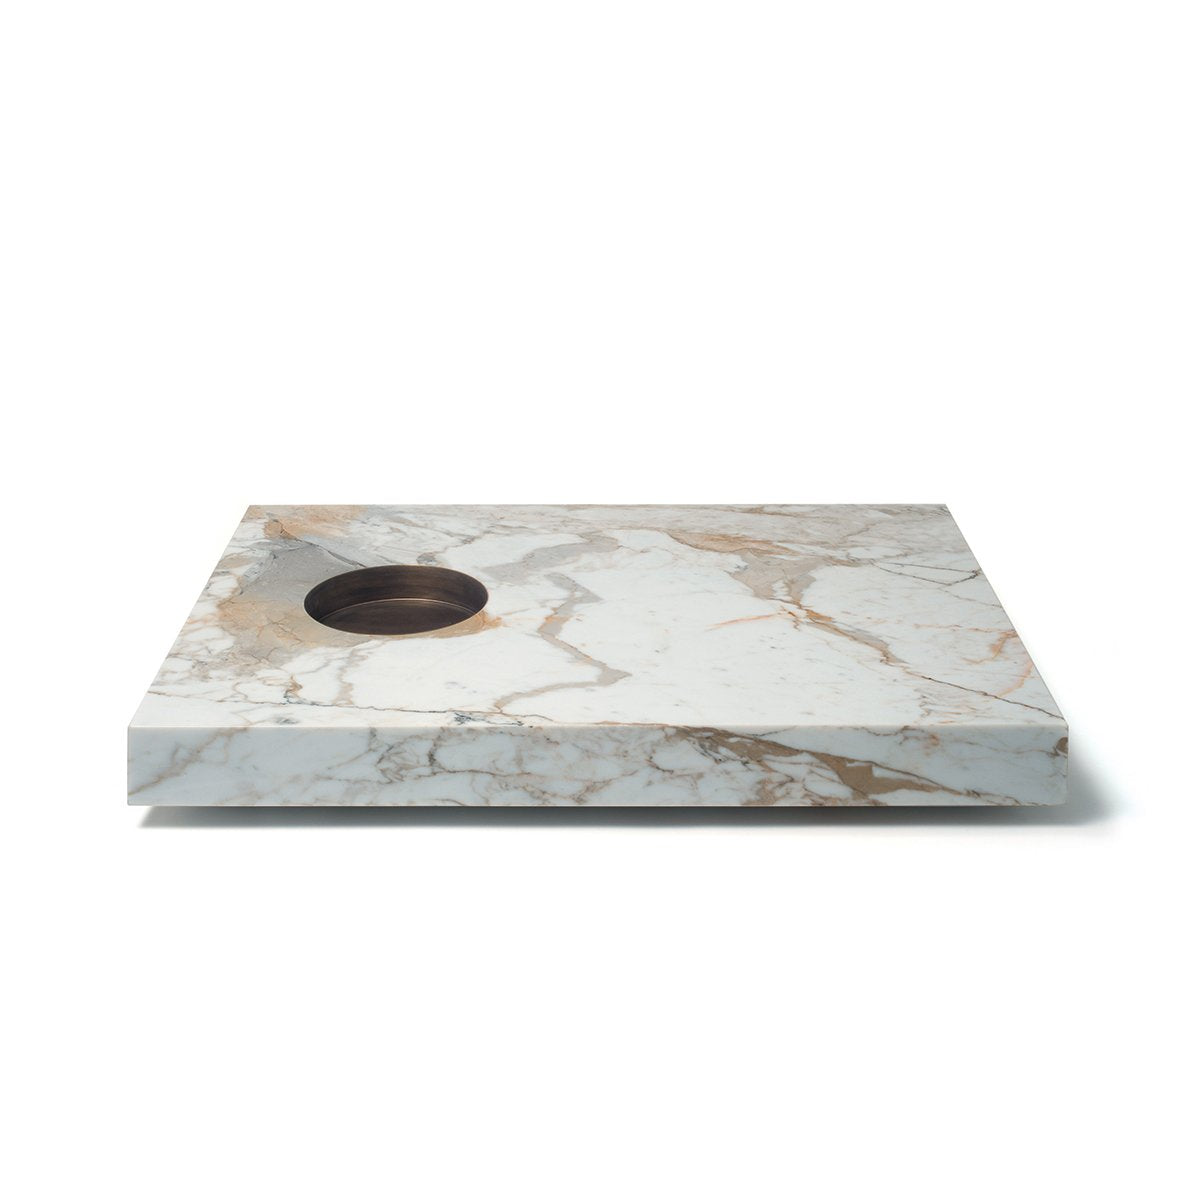 Scoop Fumo Calacatta Oro Marble and Brass Coffee Table by Mmairo at SORS